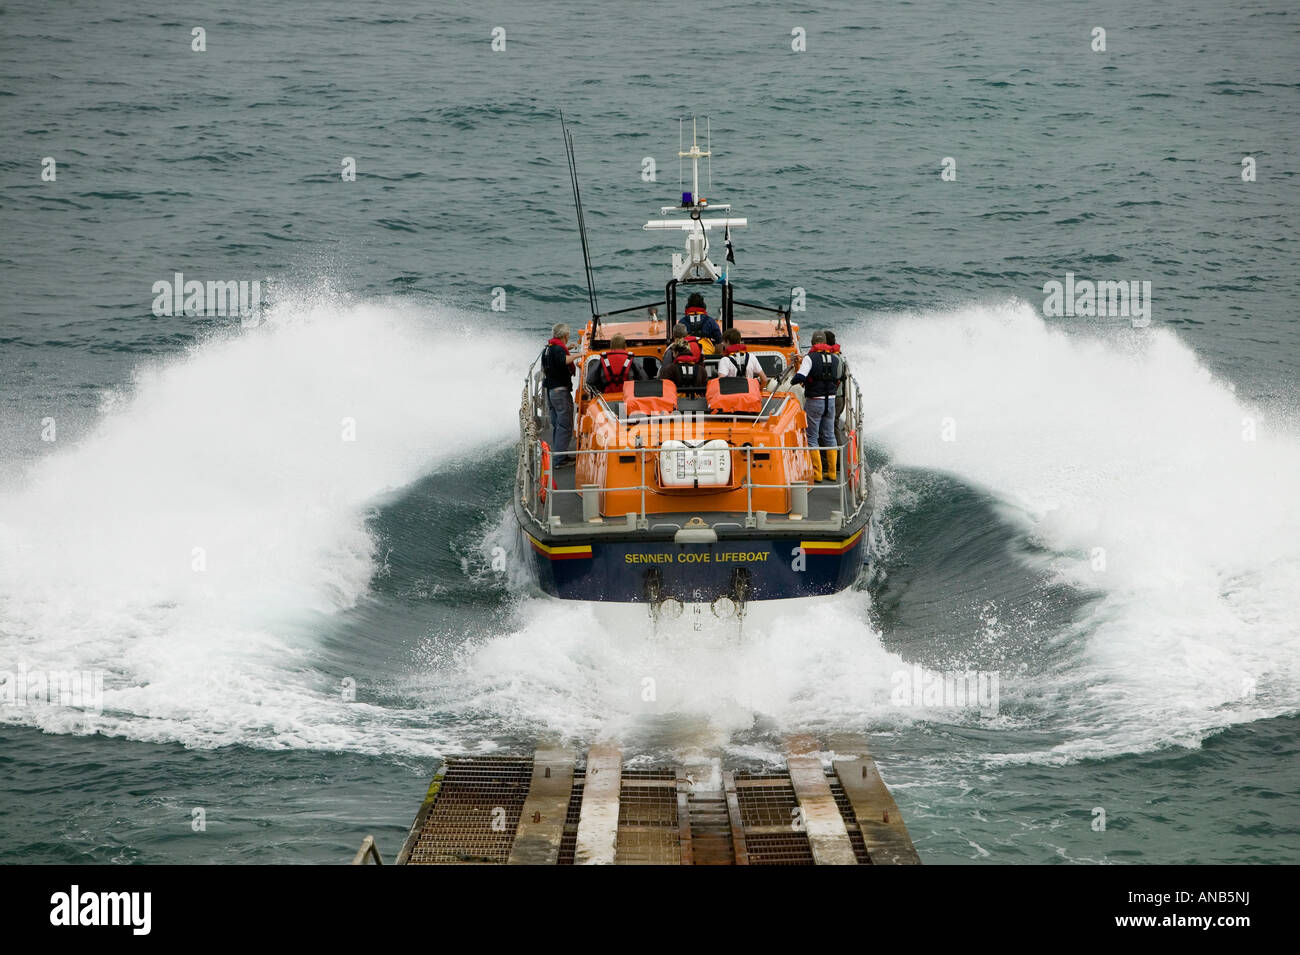 The Sennen lifeboat launches. - Stock Image